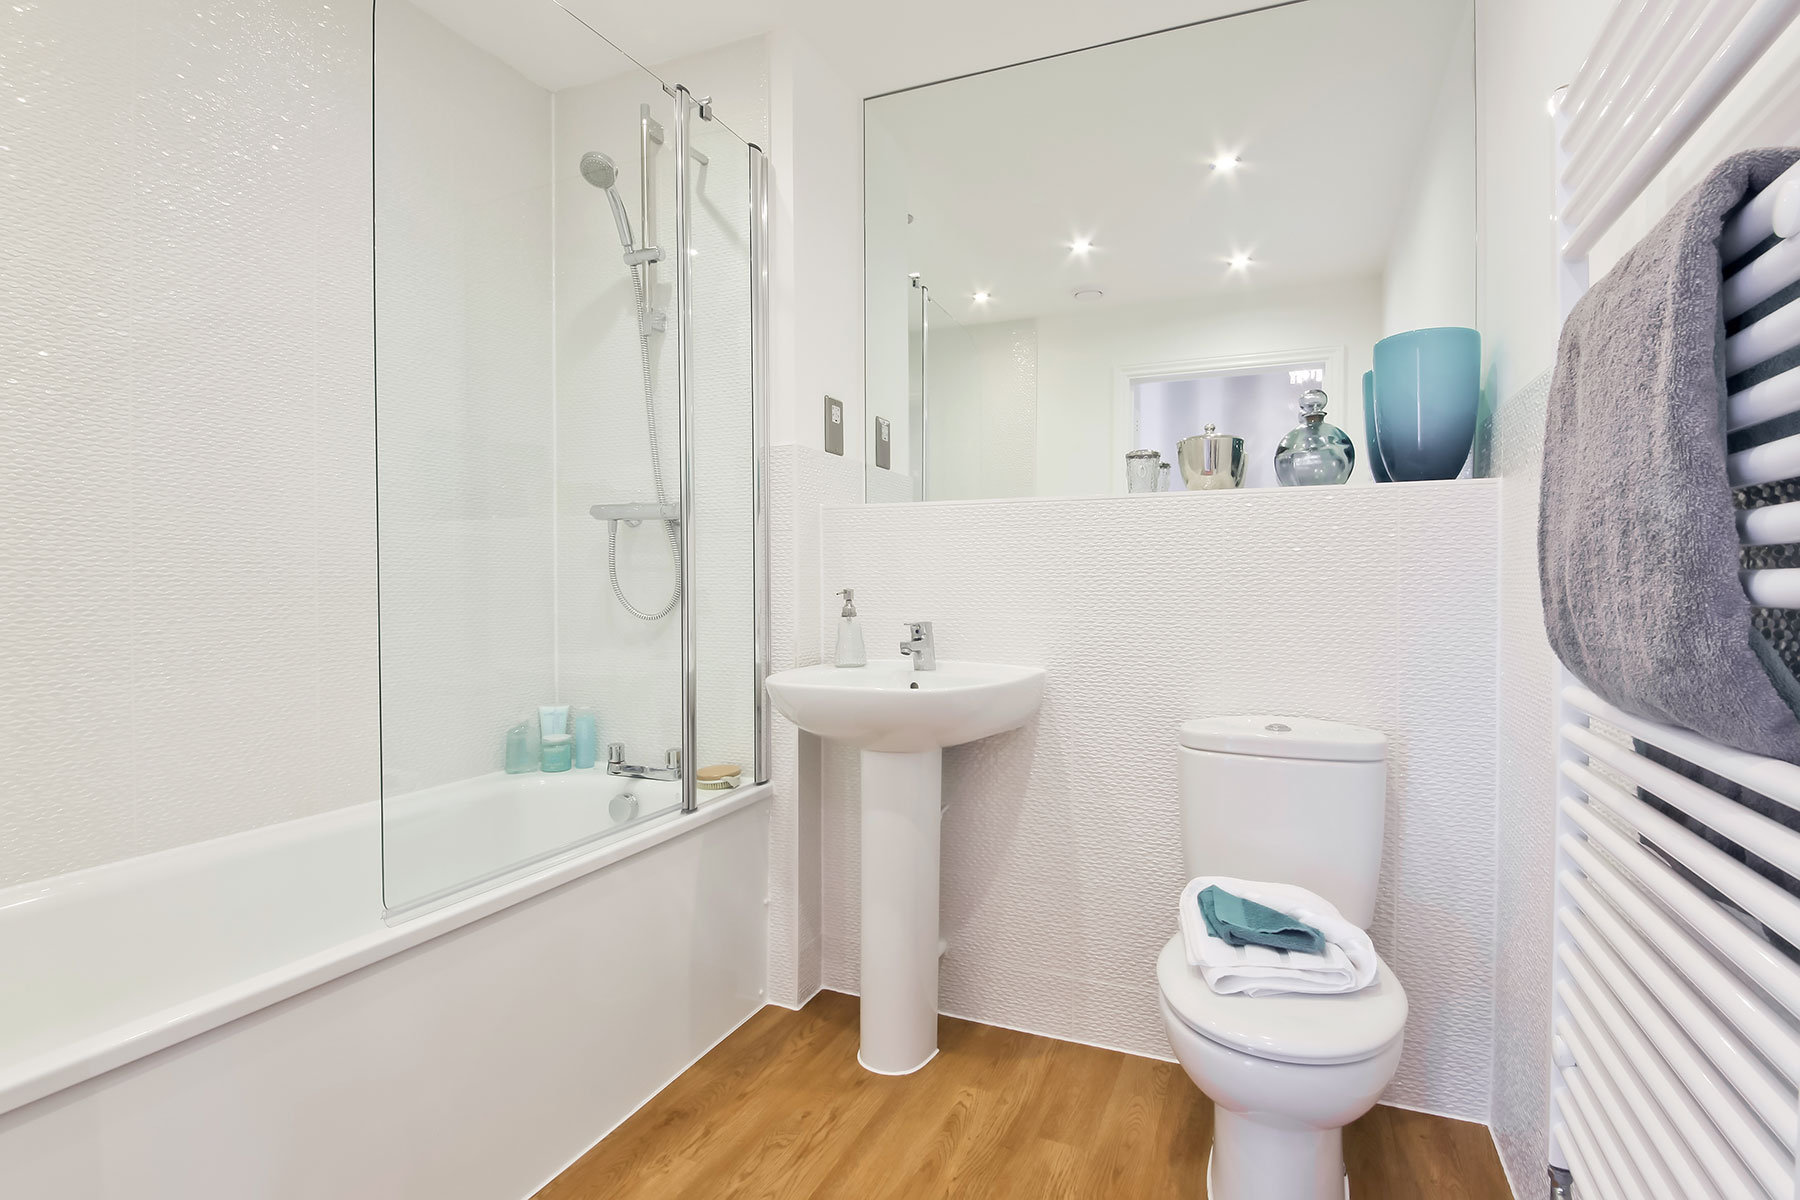 Taylor Wimpey - typical family bathroom